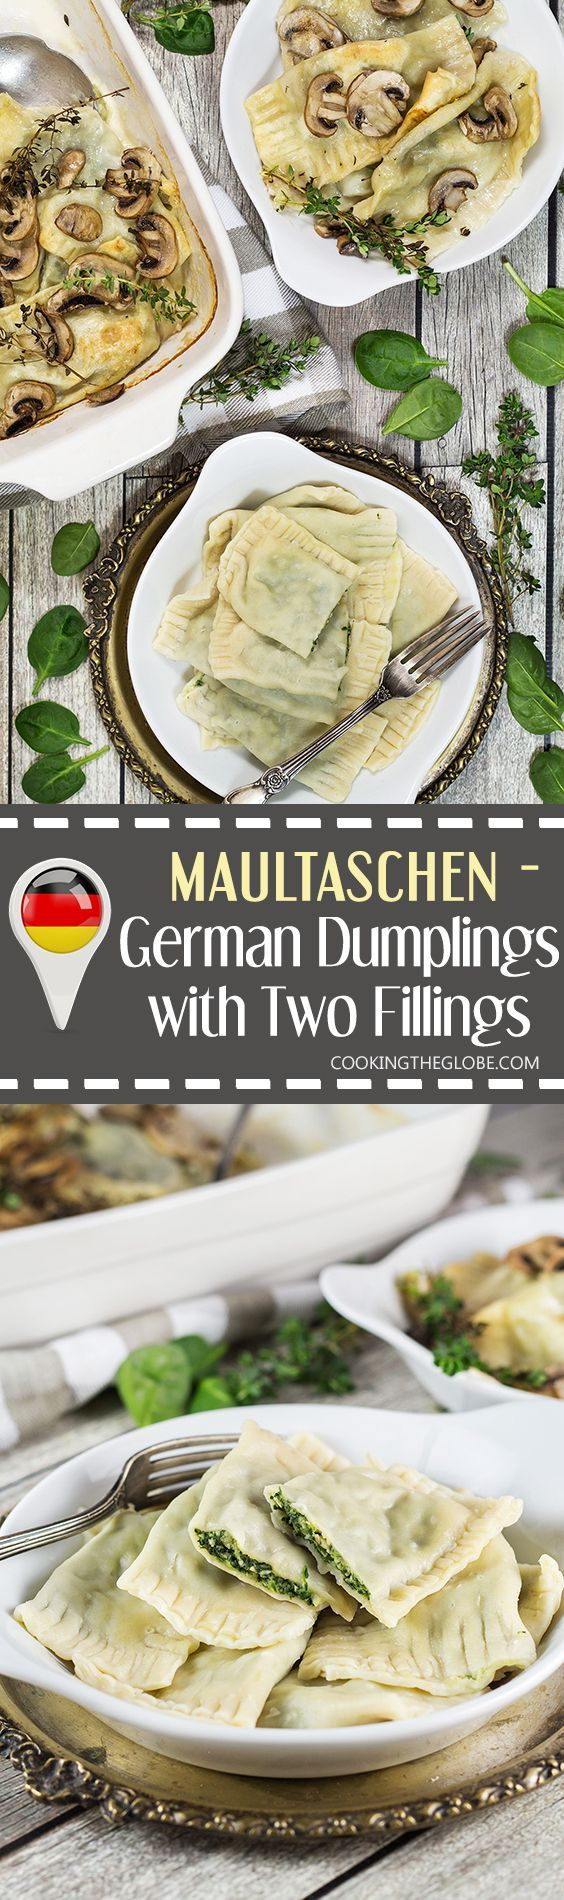 Maultaschen is a German version of Italian ravioli dumplings, only way bigger. This recipe features two different fillings: a traditional and a modern one! | http://cookingtheglobe.com